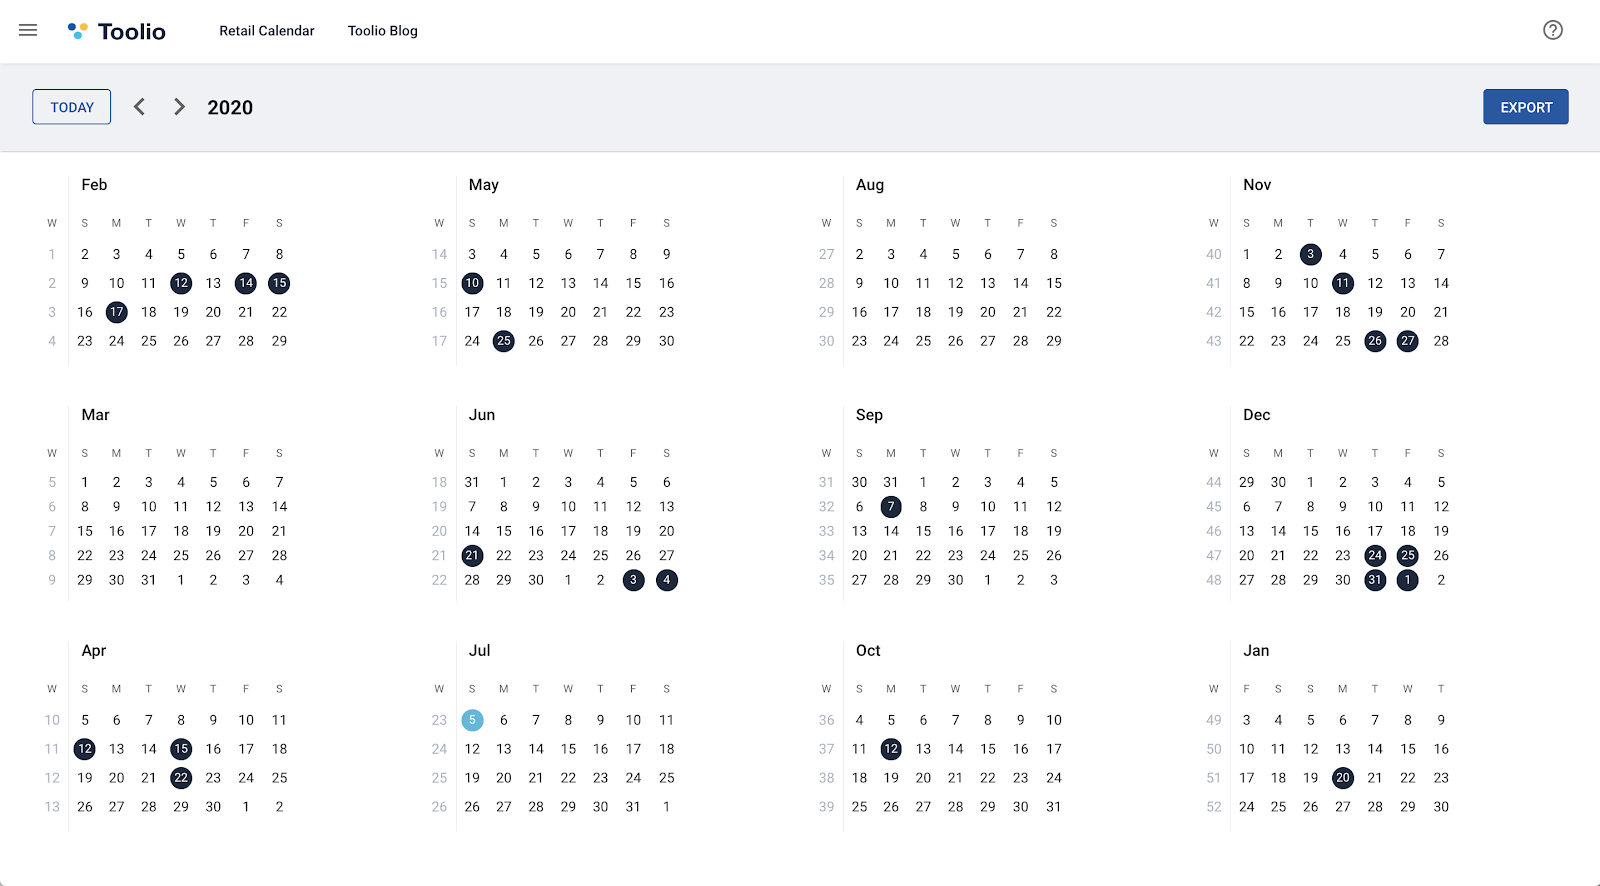 Retail Calendar 2022.The Retail Calendar For Better Merchandising And Sales Reporting Free Tool Guide Toolio